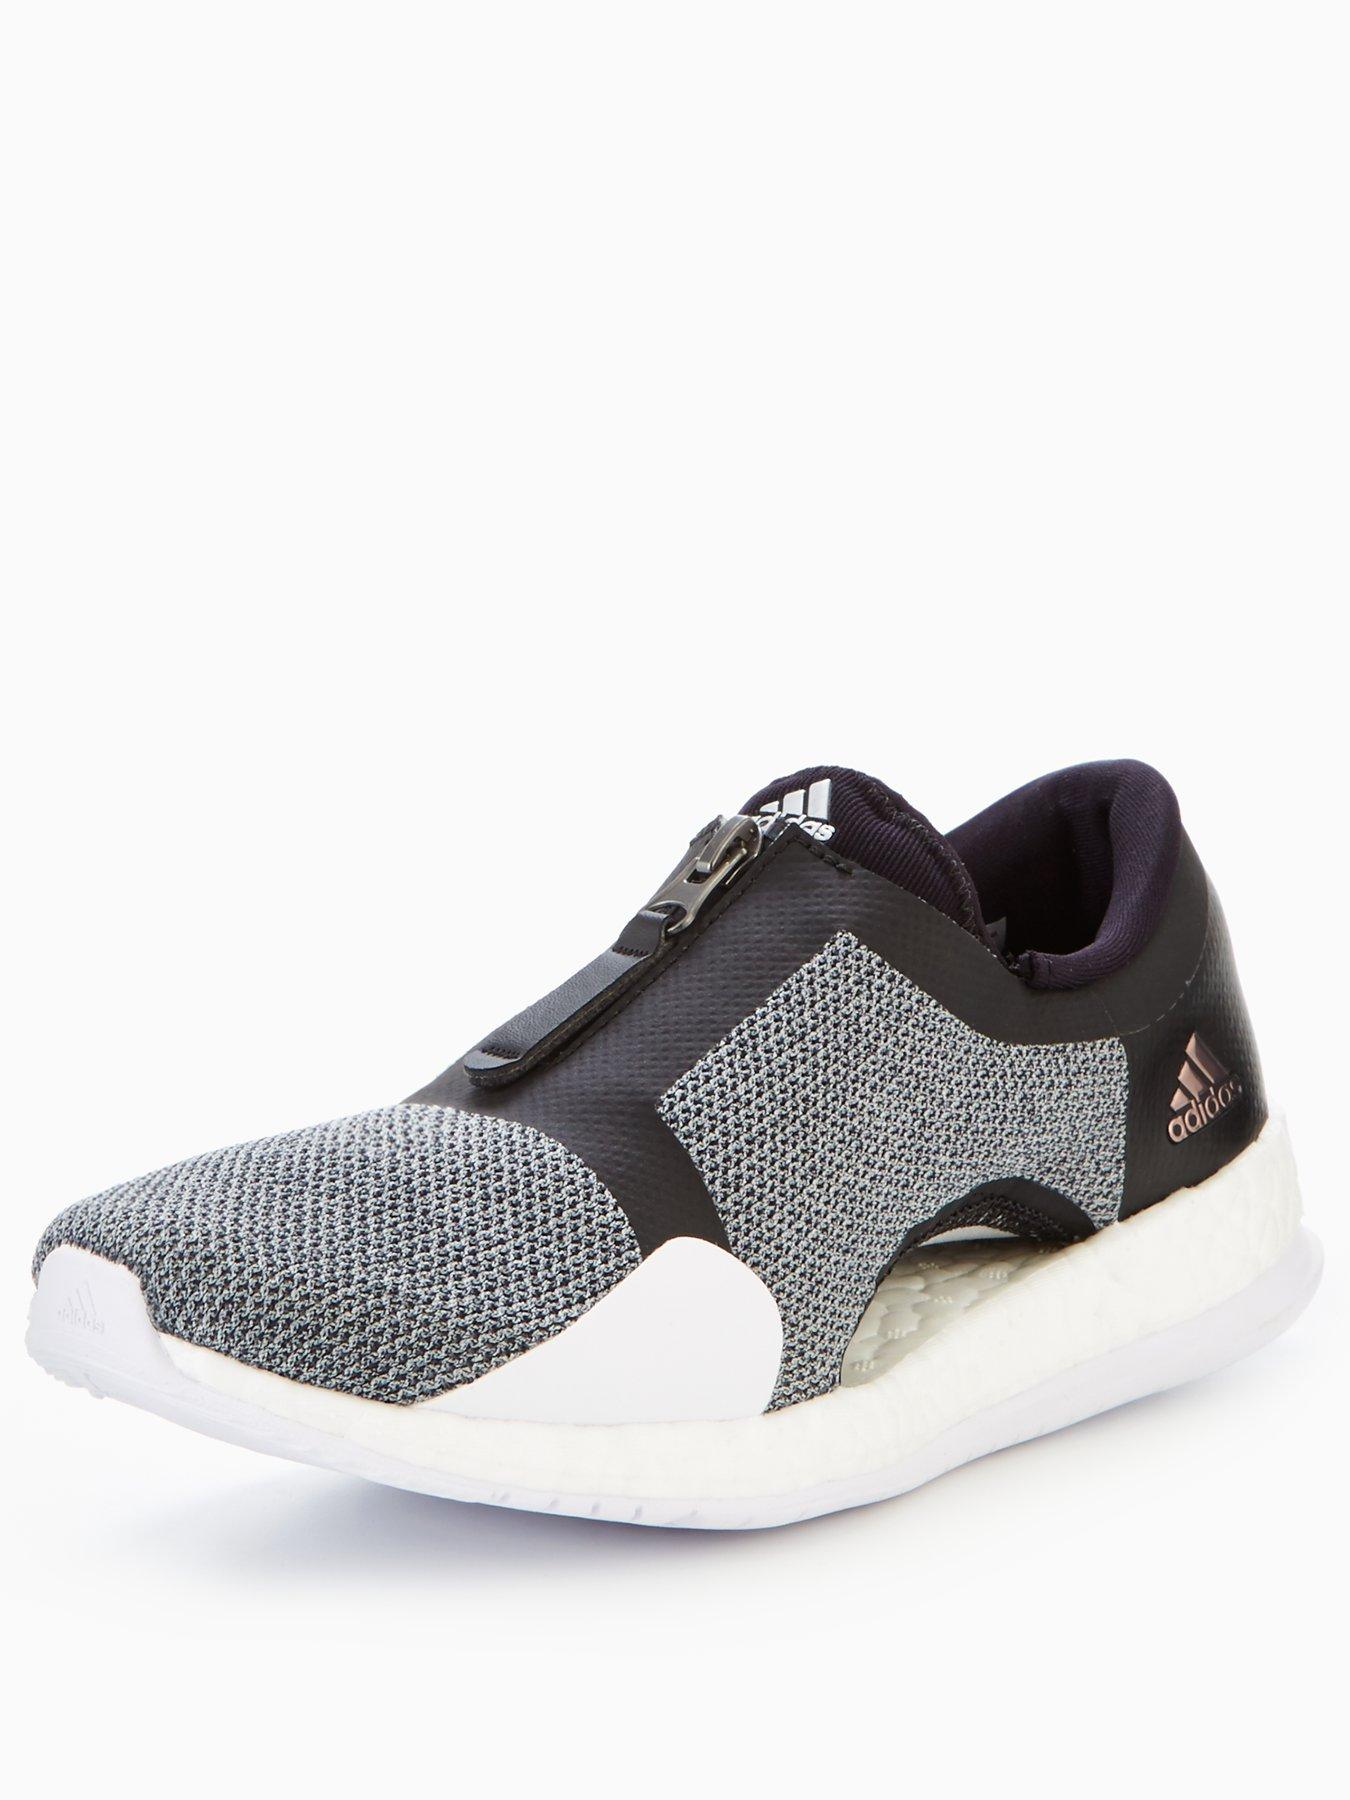 adidas Pure Boost X Trainer Zip Black/Silver 1600156854 Women's Shoes adidas Trainers